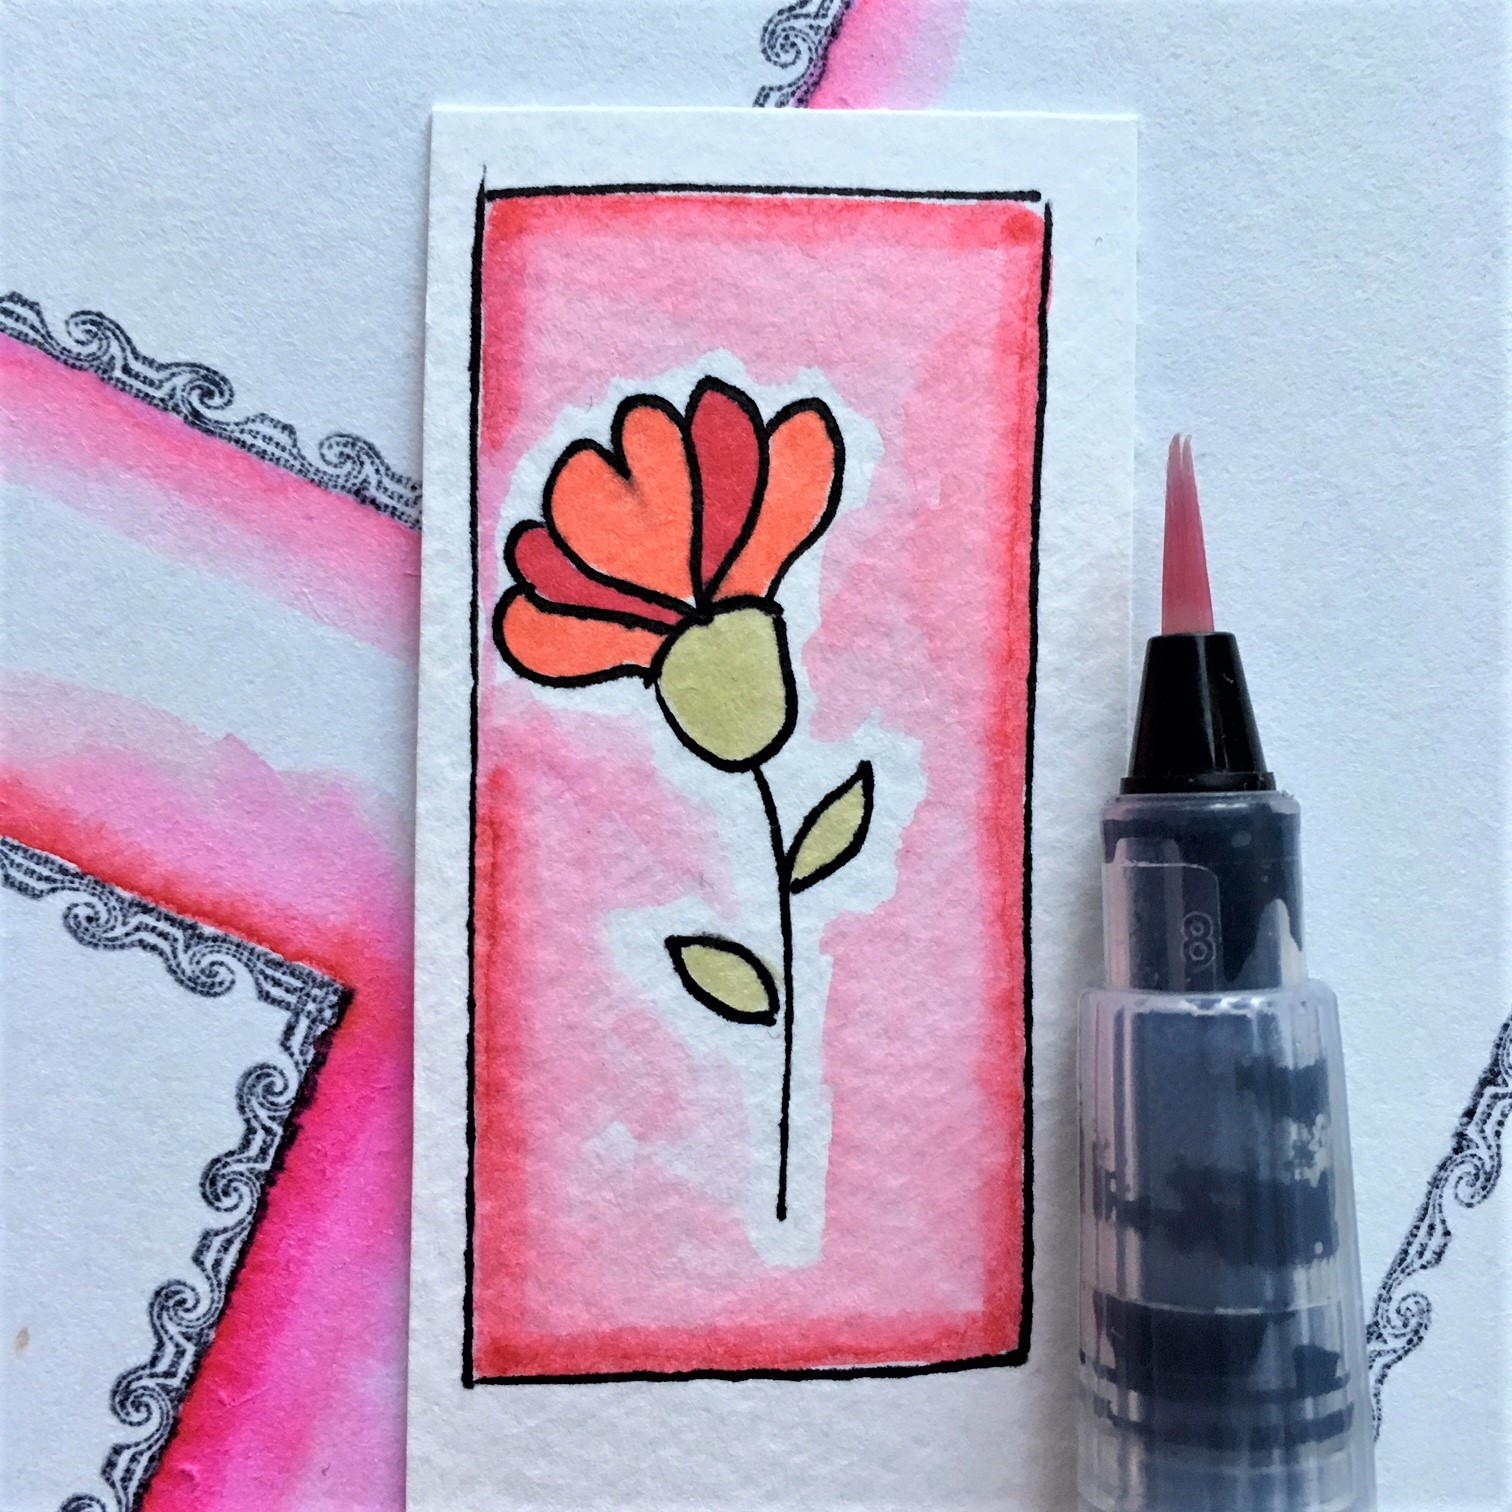 Capsule Craft Valentines - mixing watercolour and alcohol based markers